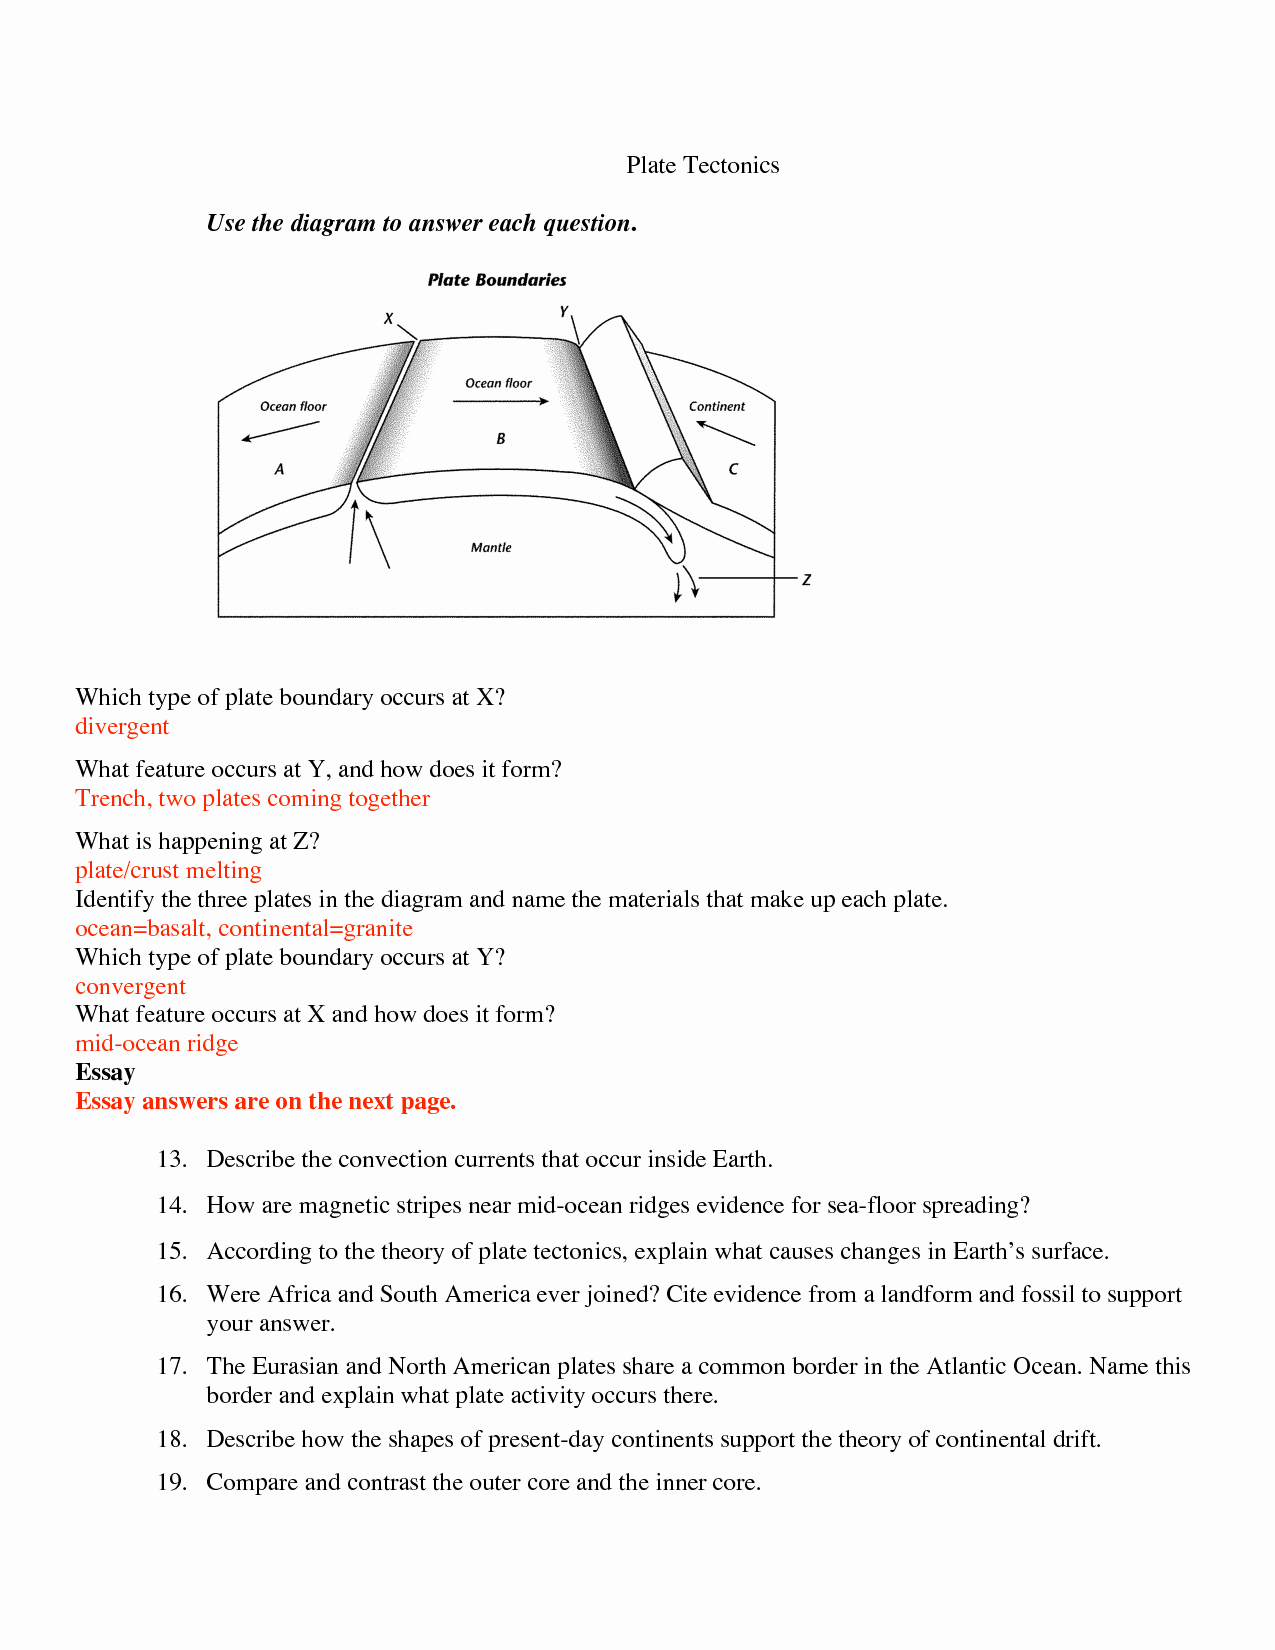 50 Plate Tectonics Worksheet Answers